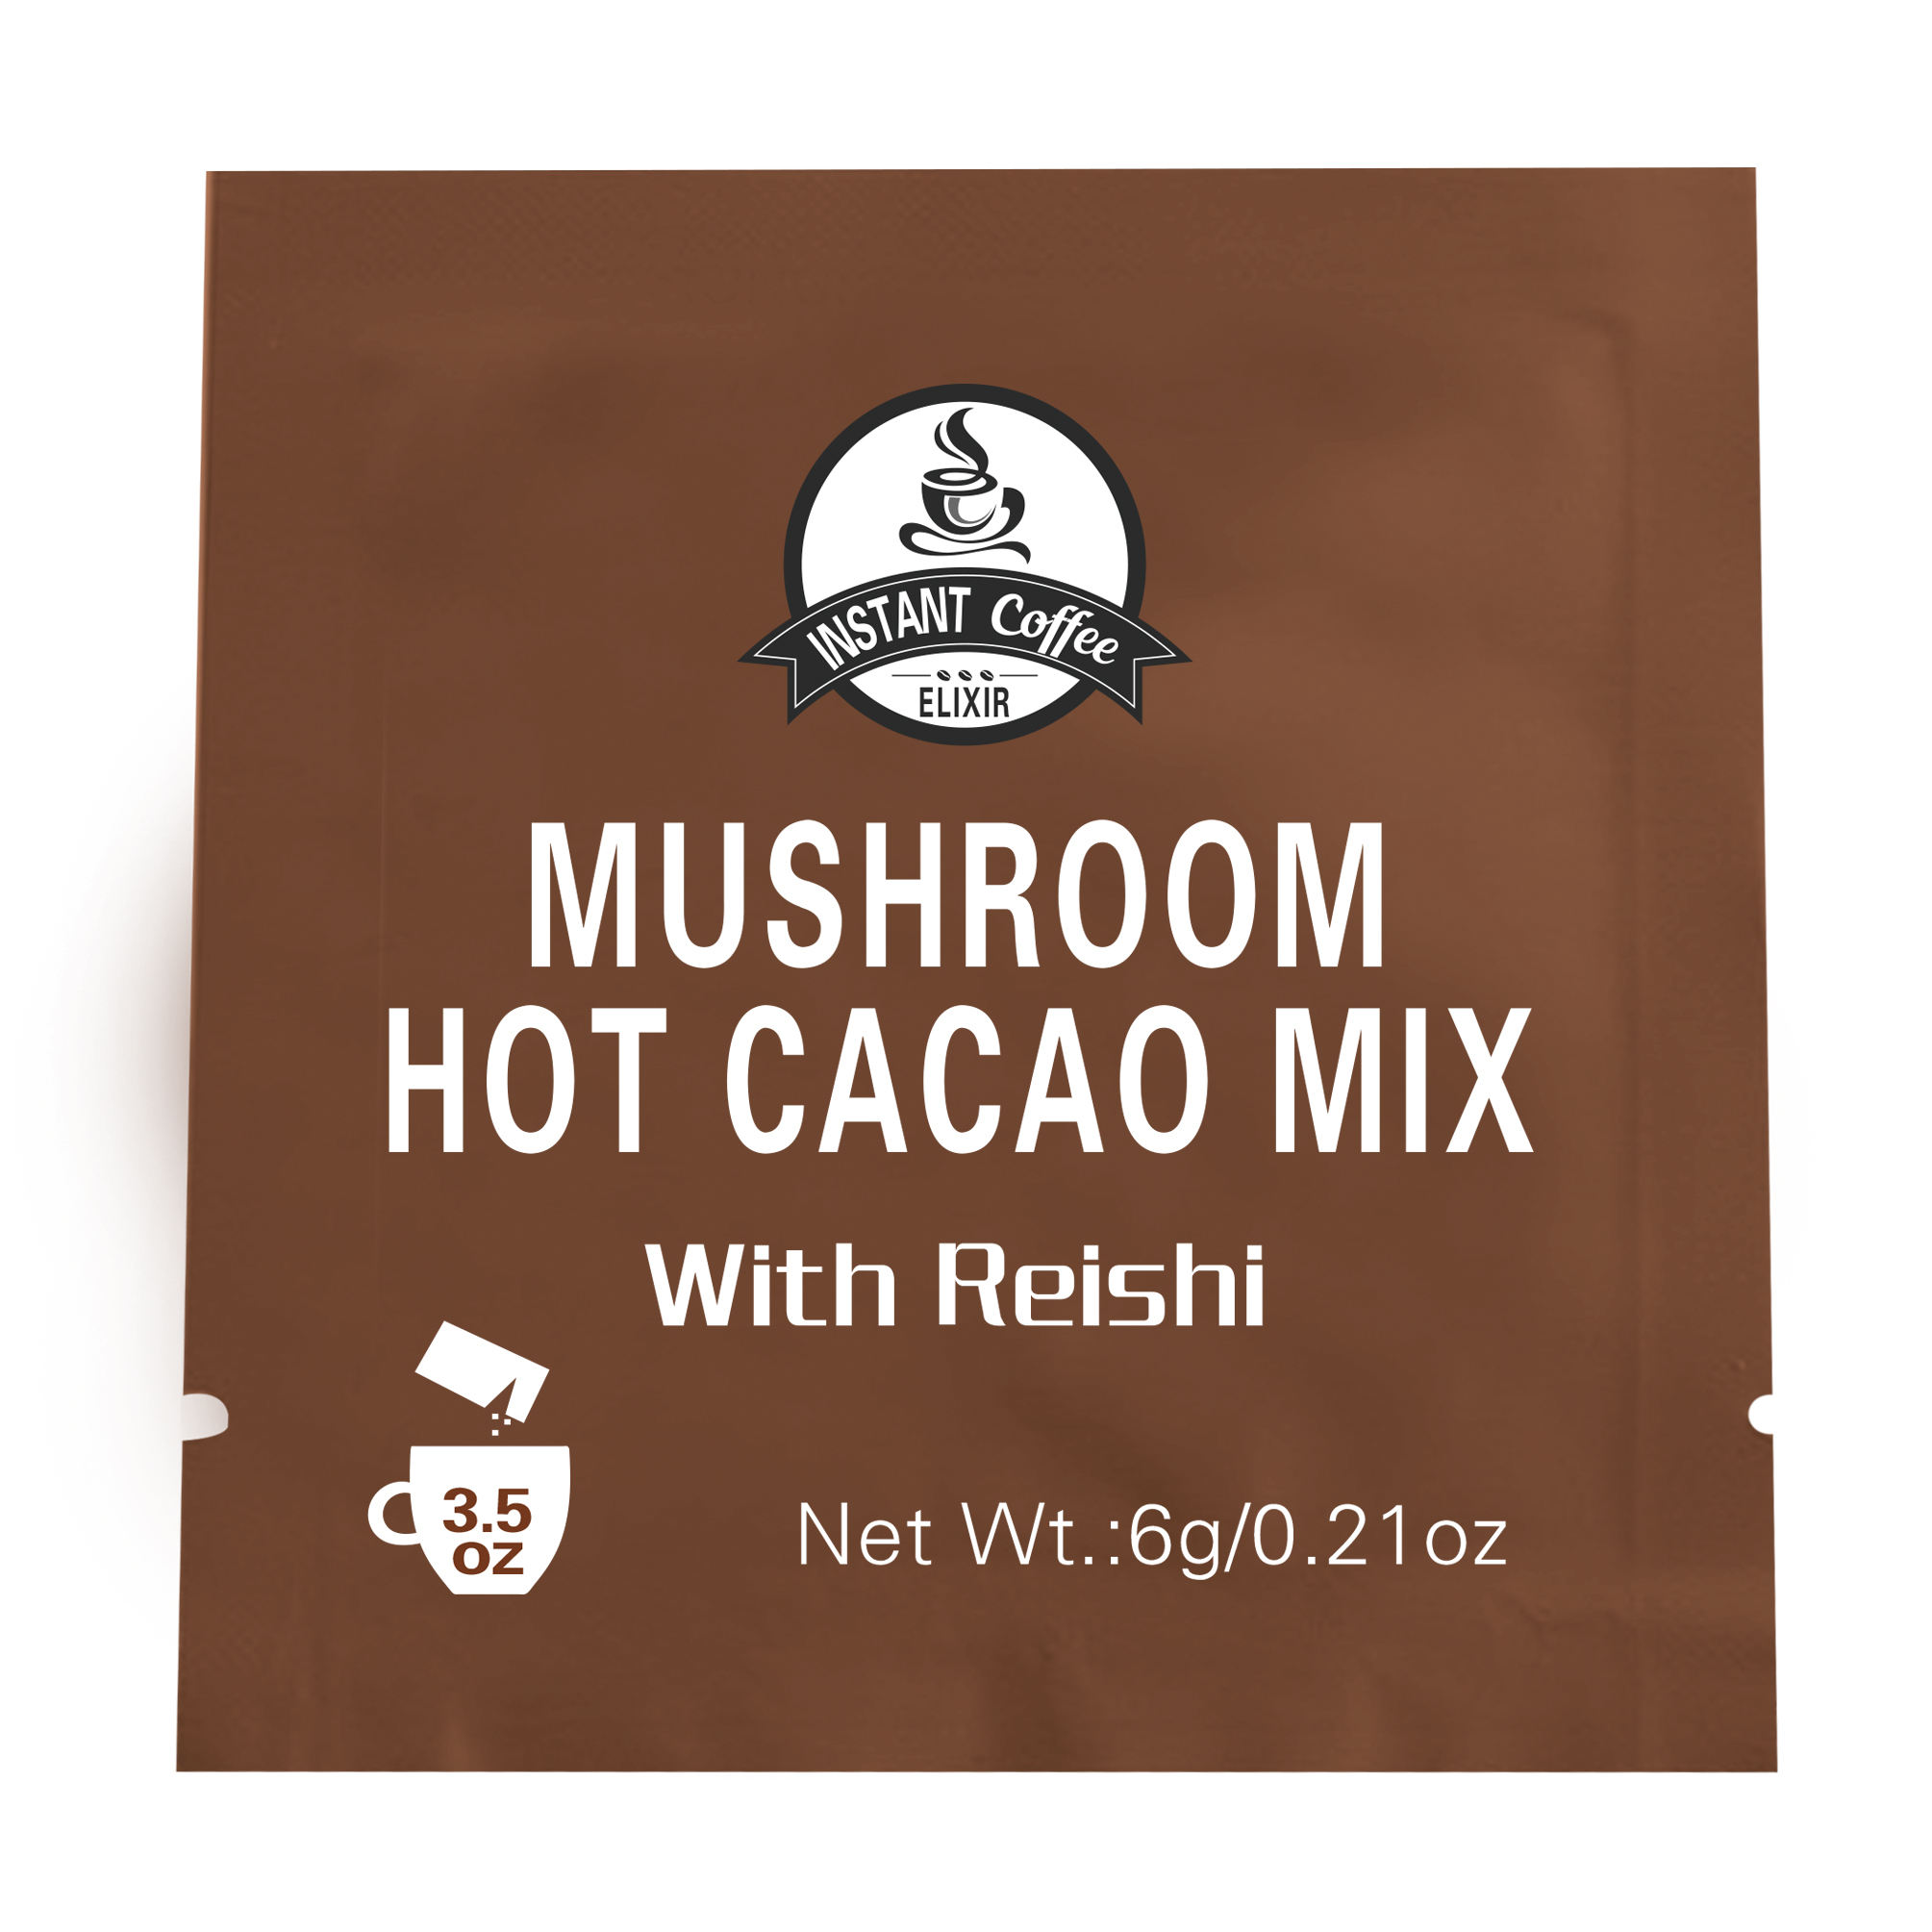 Top Quality Private Label Mushroom Hot Cacao Mix with Reishi Instant Coffee